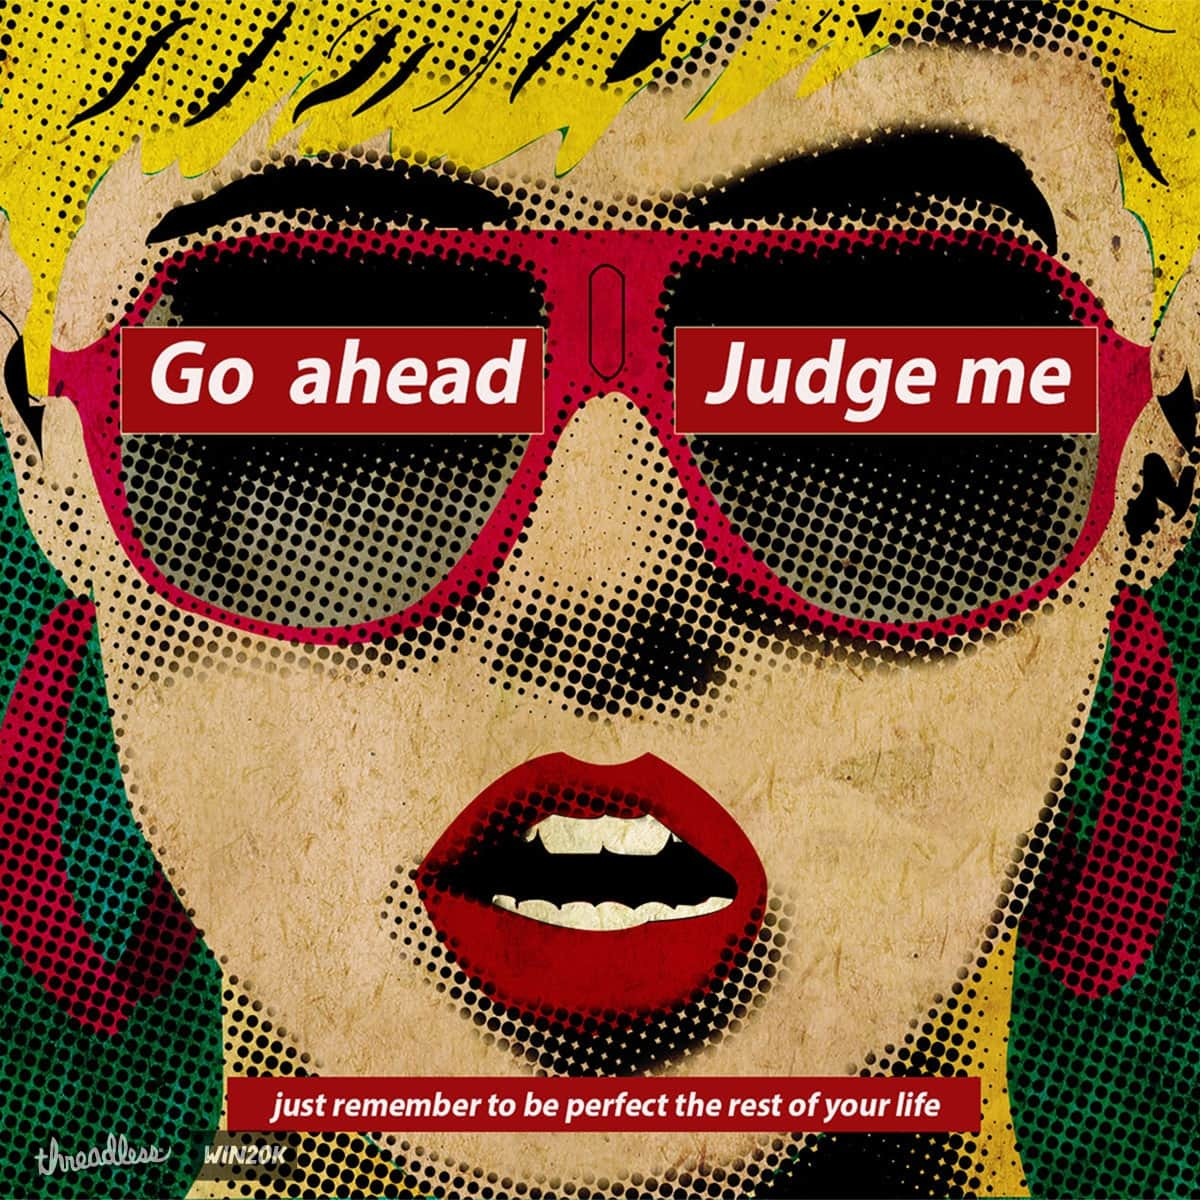 Miss Judged by thanderous on Threadless